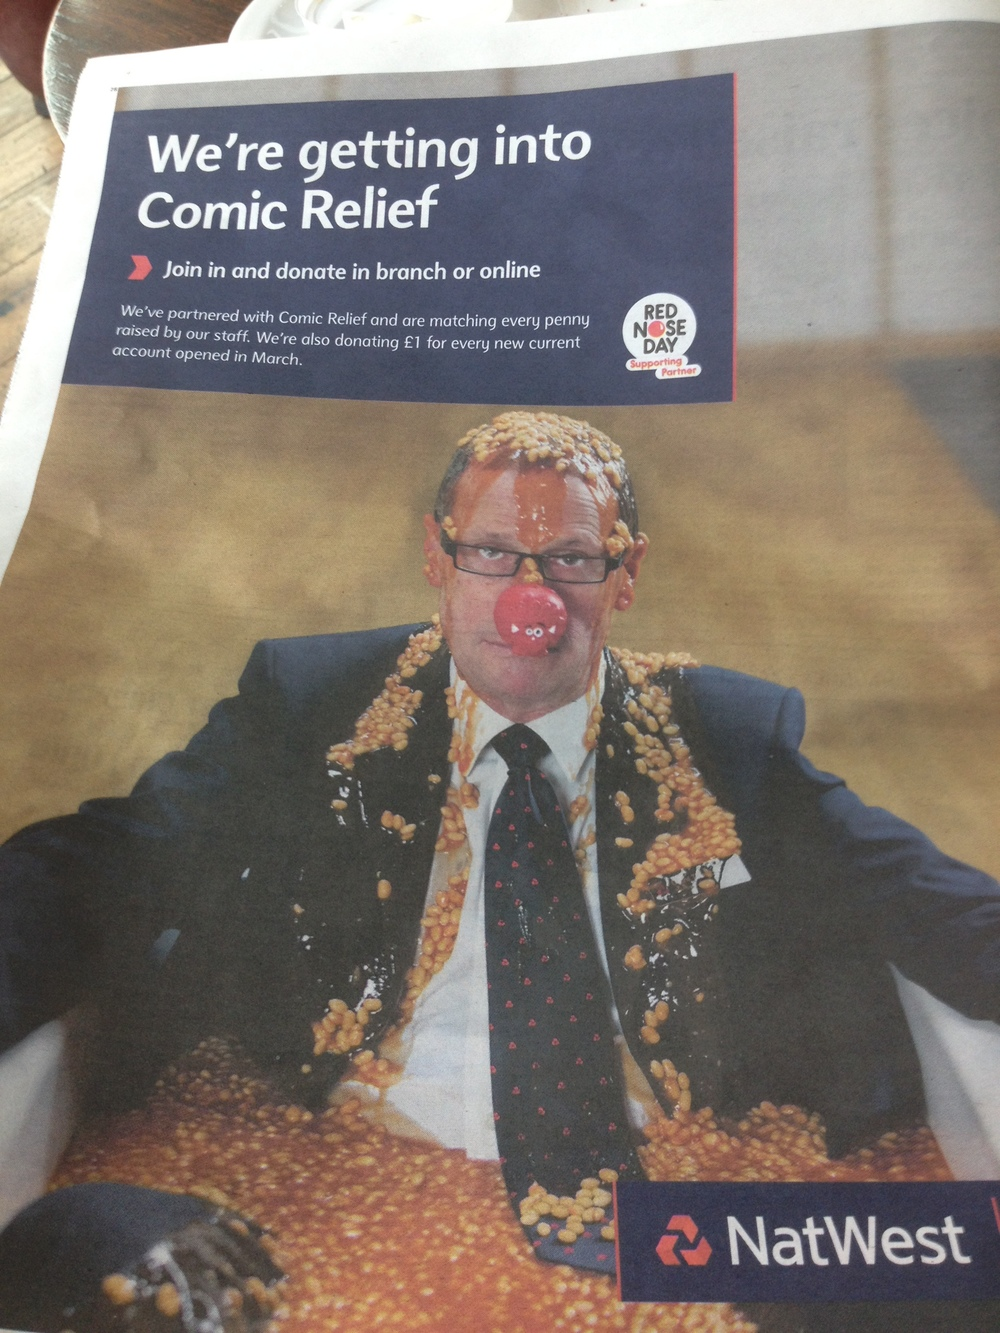 Funny Red Nose Day advertisement